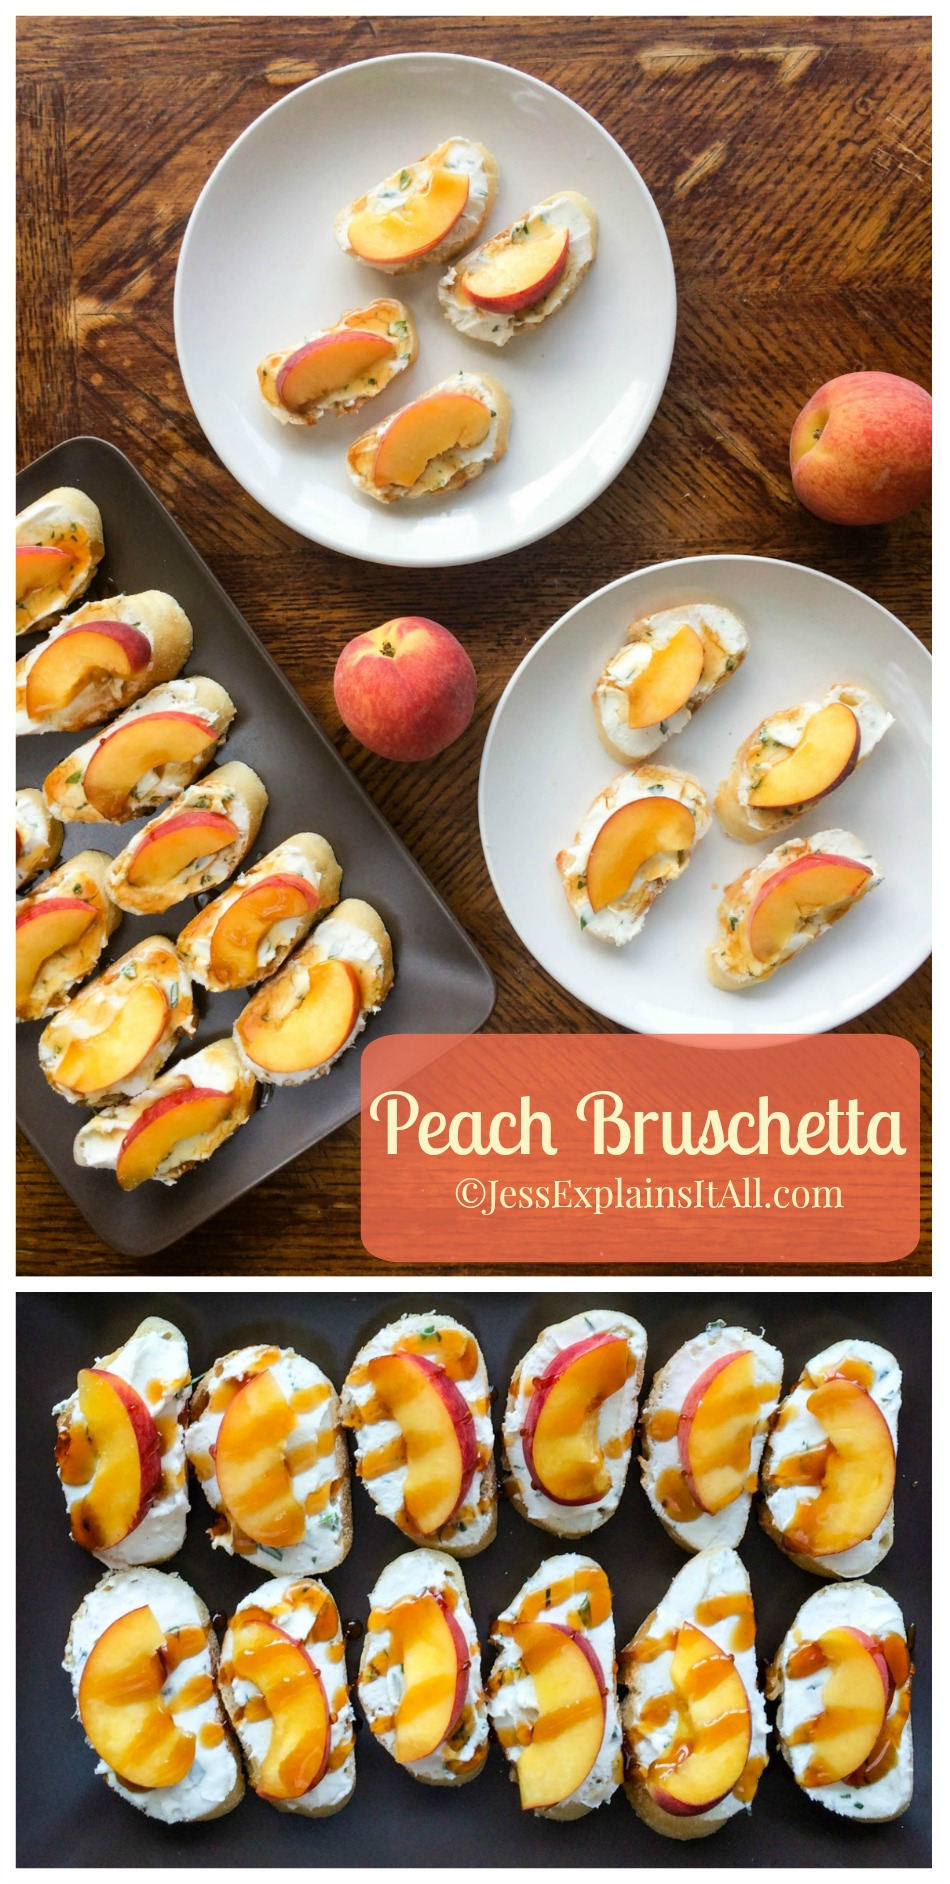 This peach bruschetta takes 10 min and is no bake!